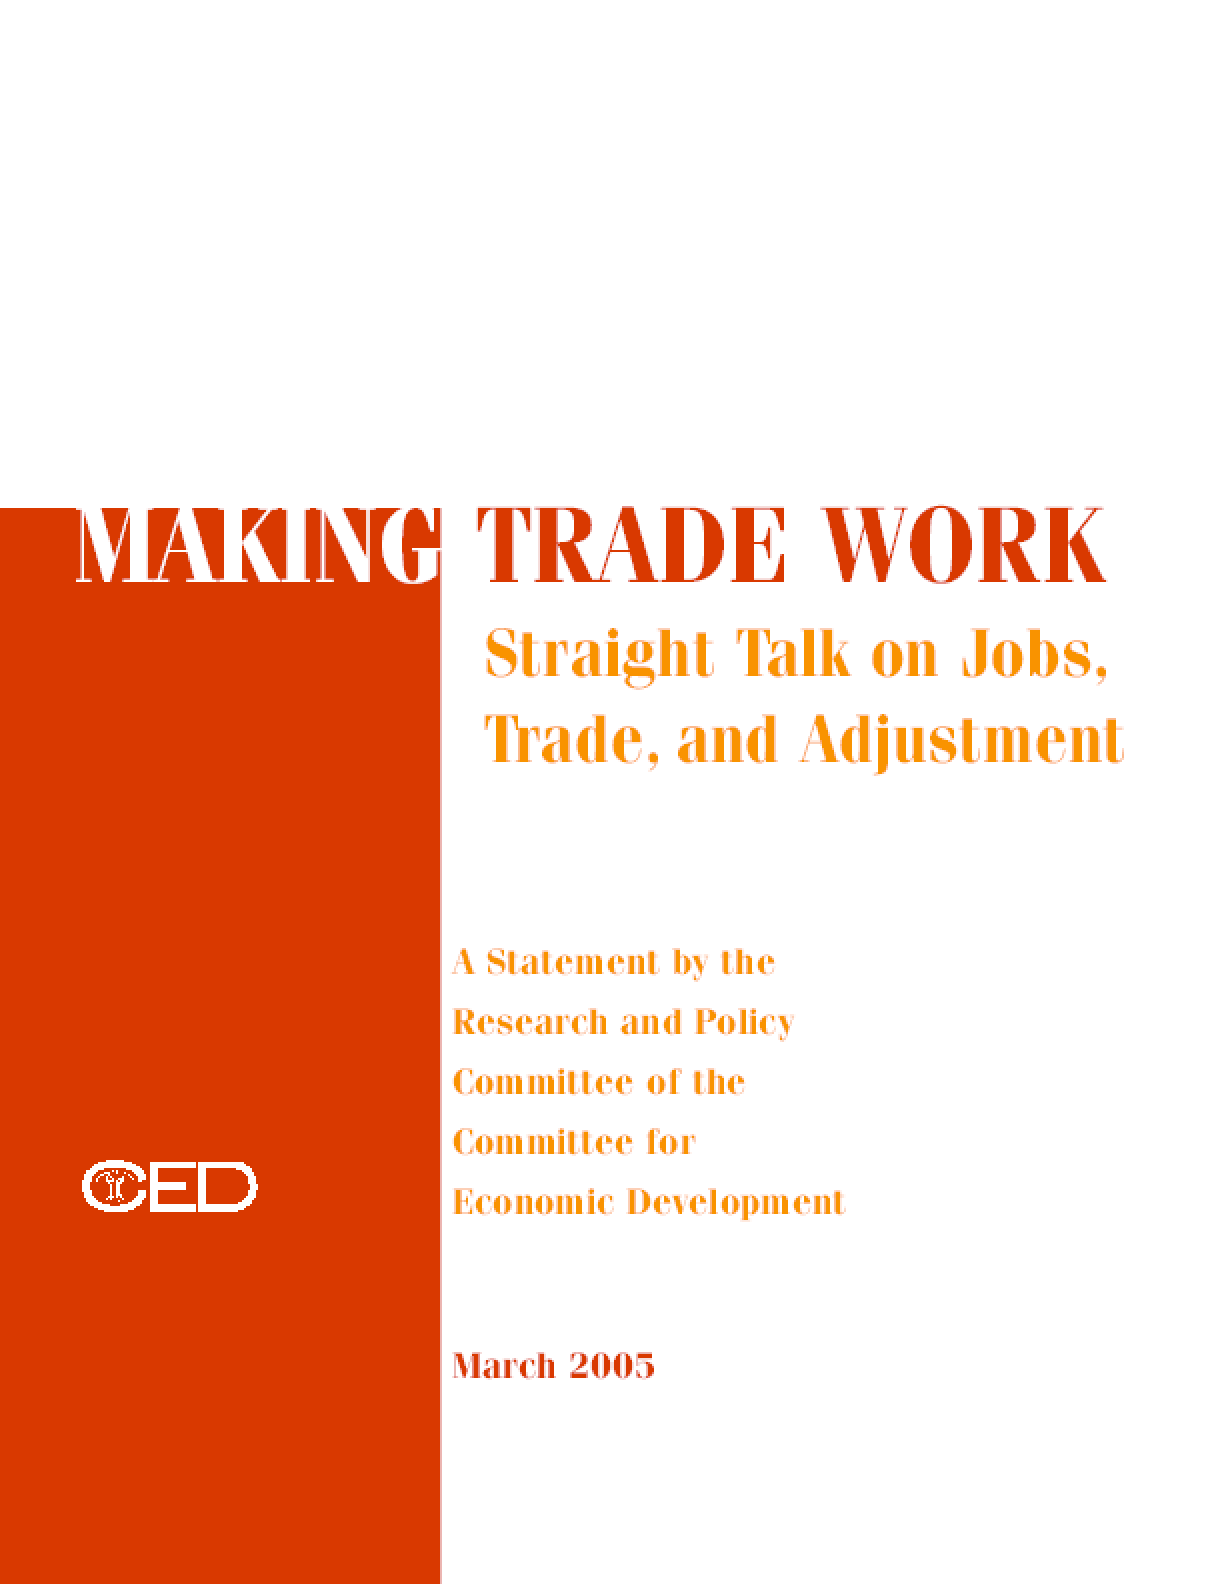 Making Trade Work: Straight Talk on Jobs, Trade, and Adjustment